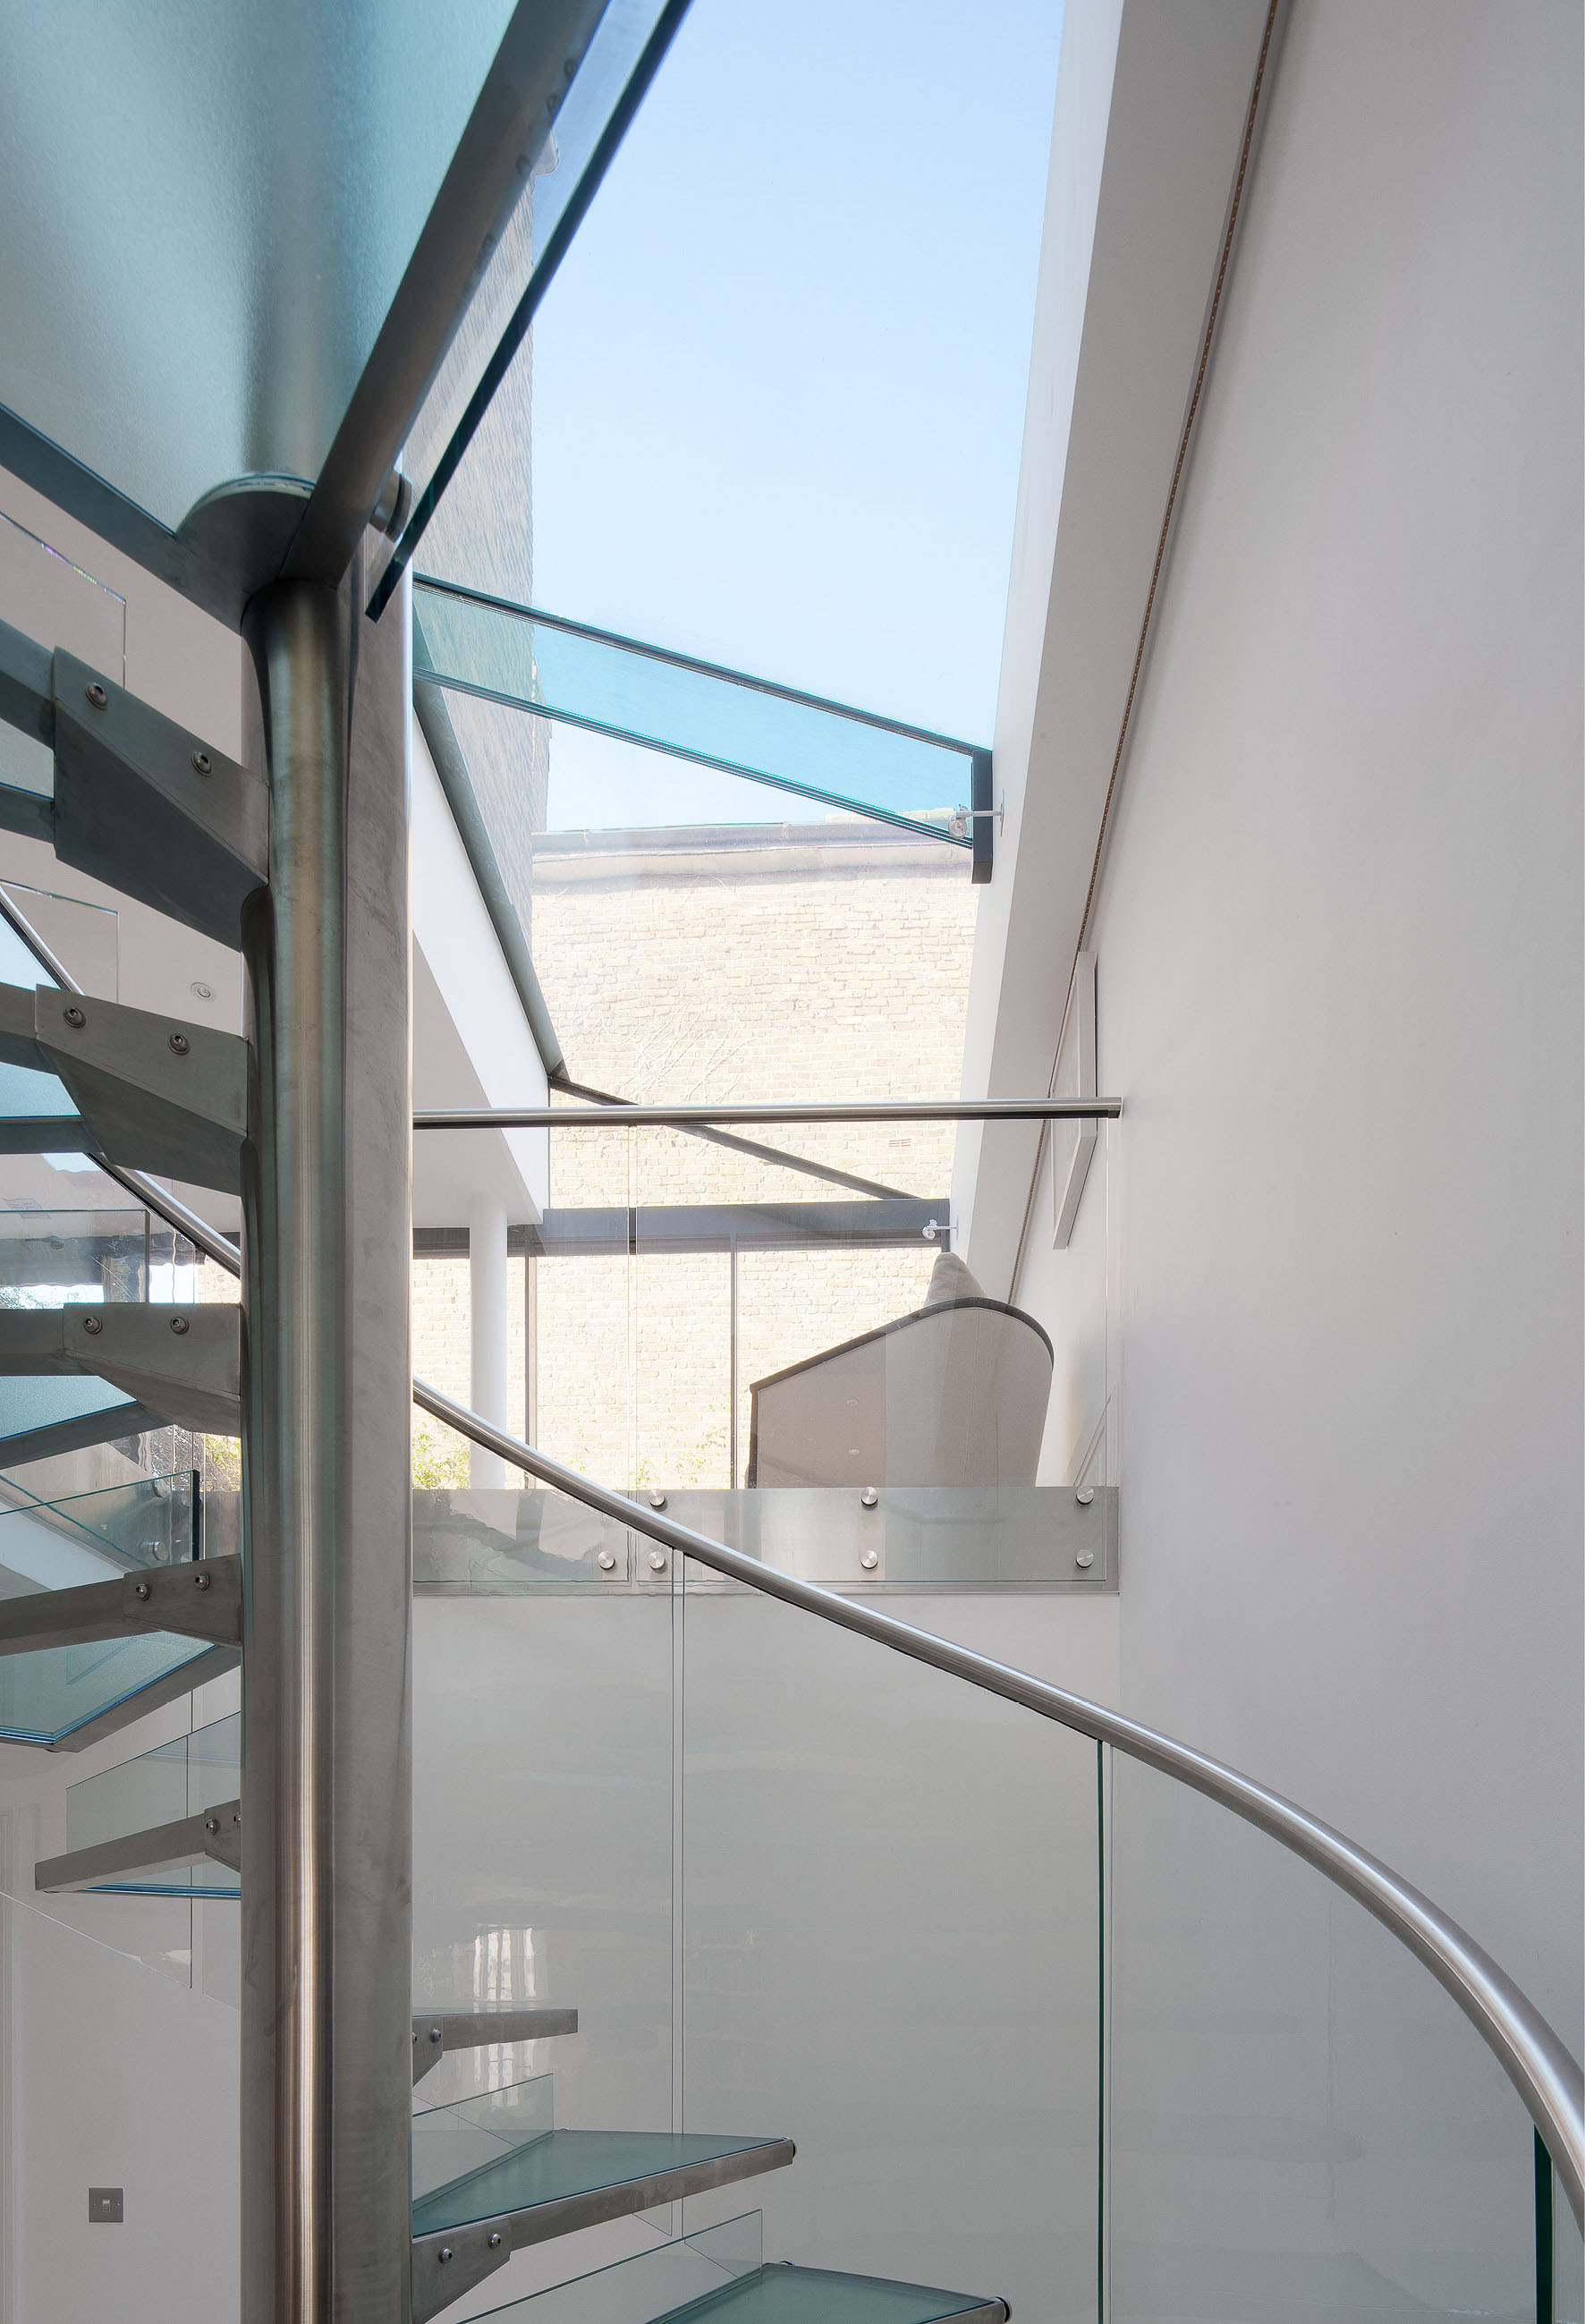 Detail of the glass and steel staircase. View to the living space with modern glass roof extension